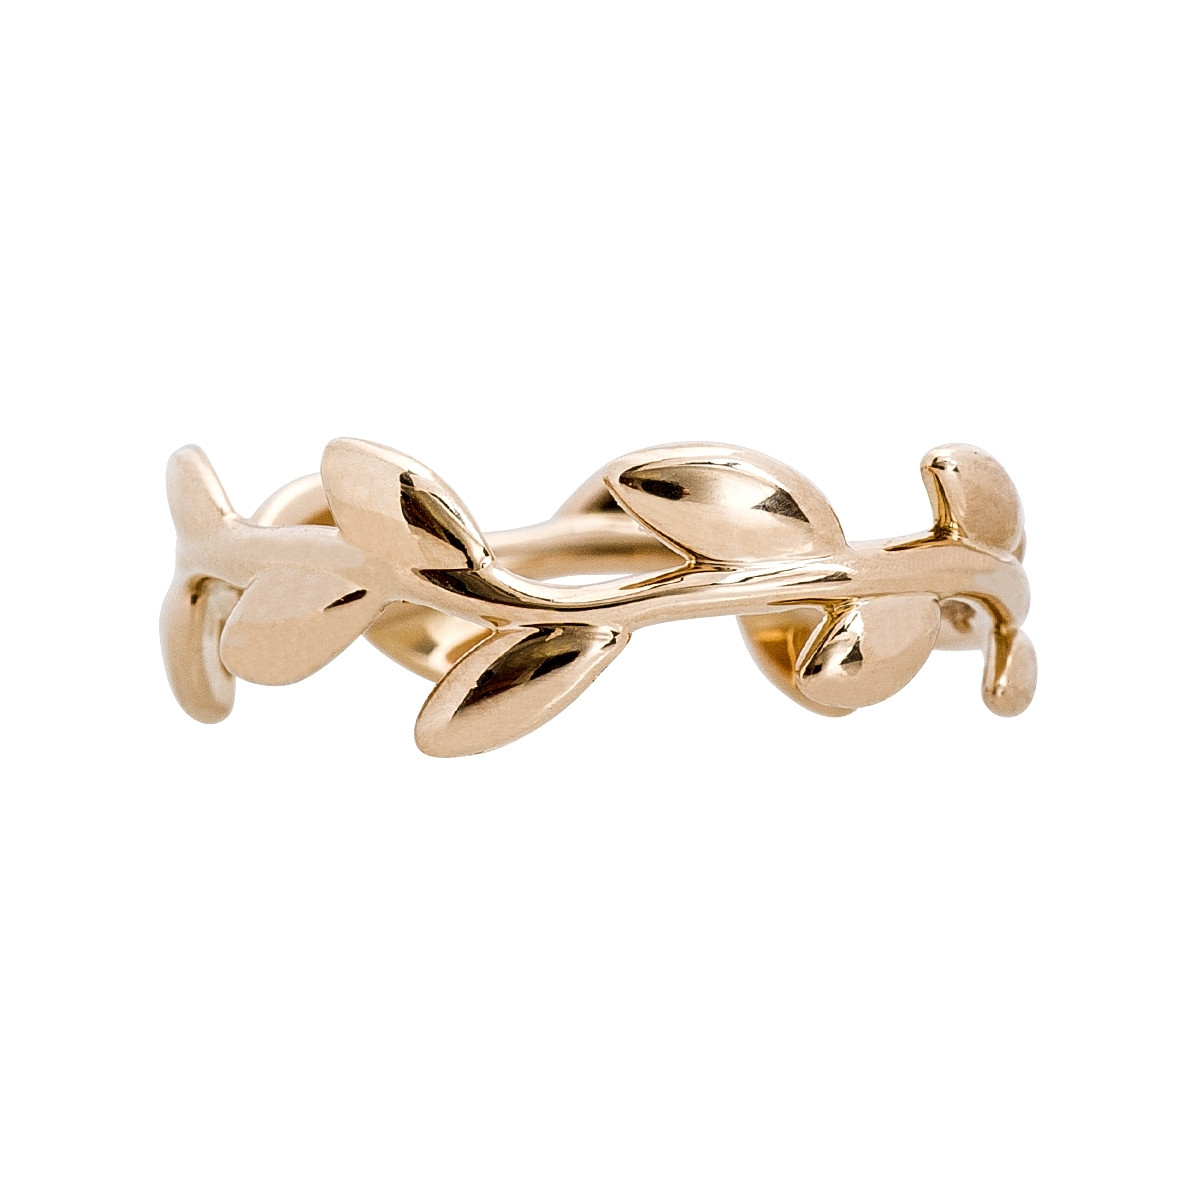 f37bbe36f Vintage Tiffany & Co. Paloma Picasso Olive Leaf Ring